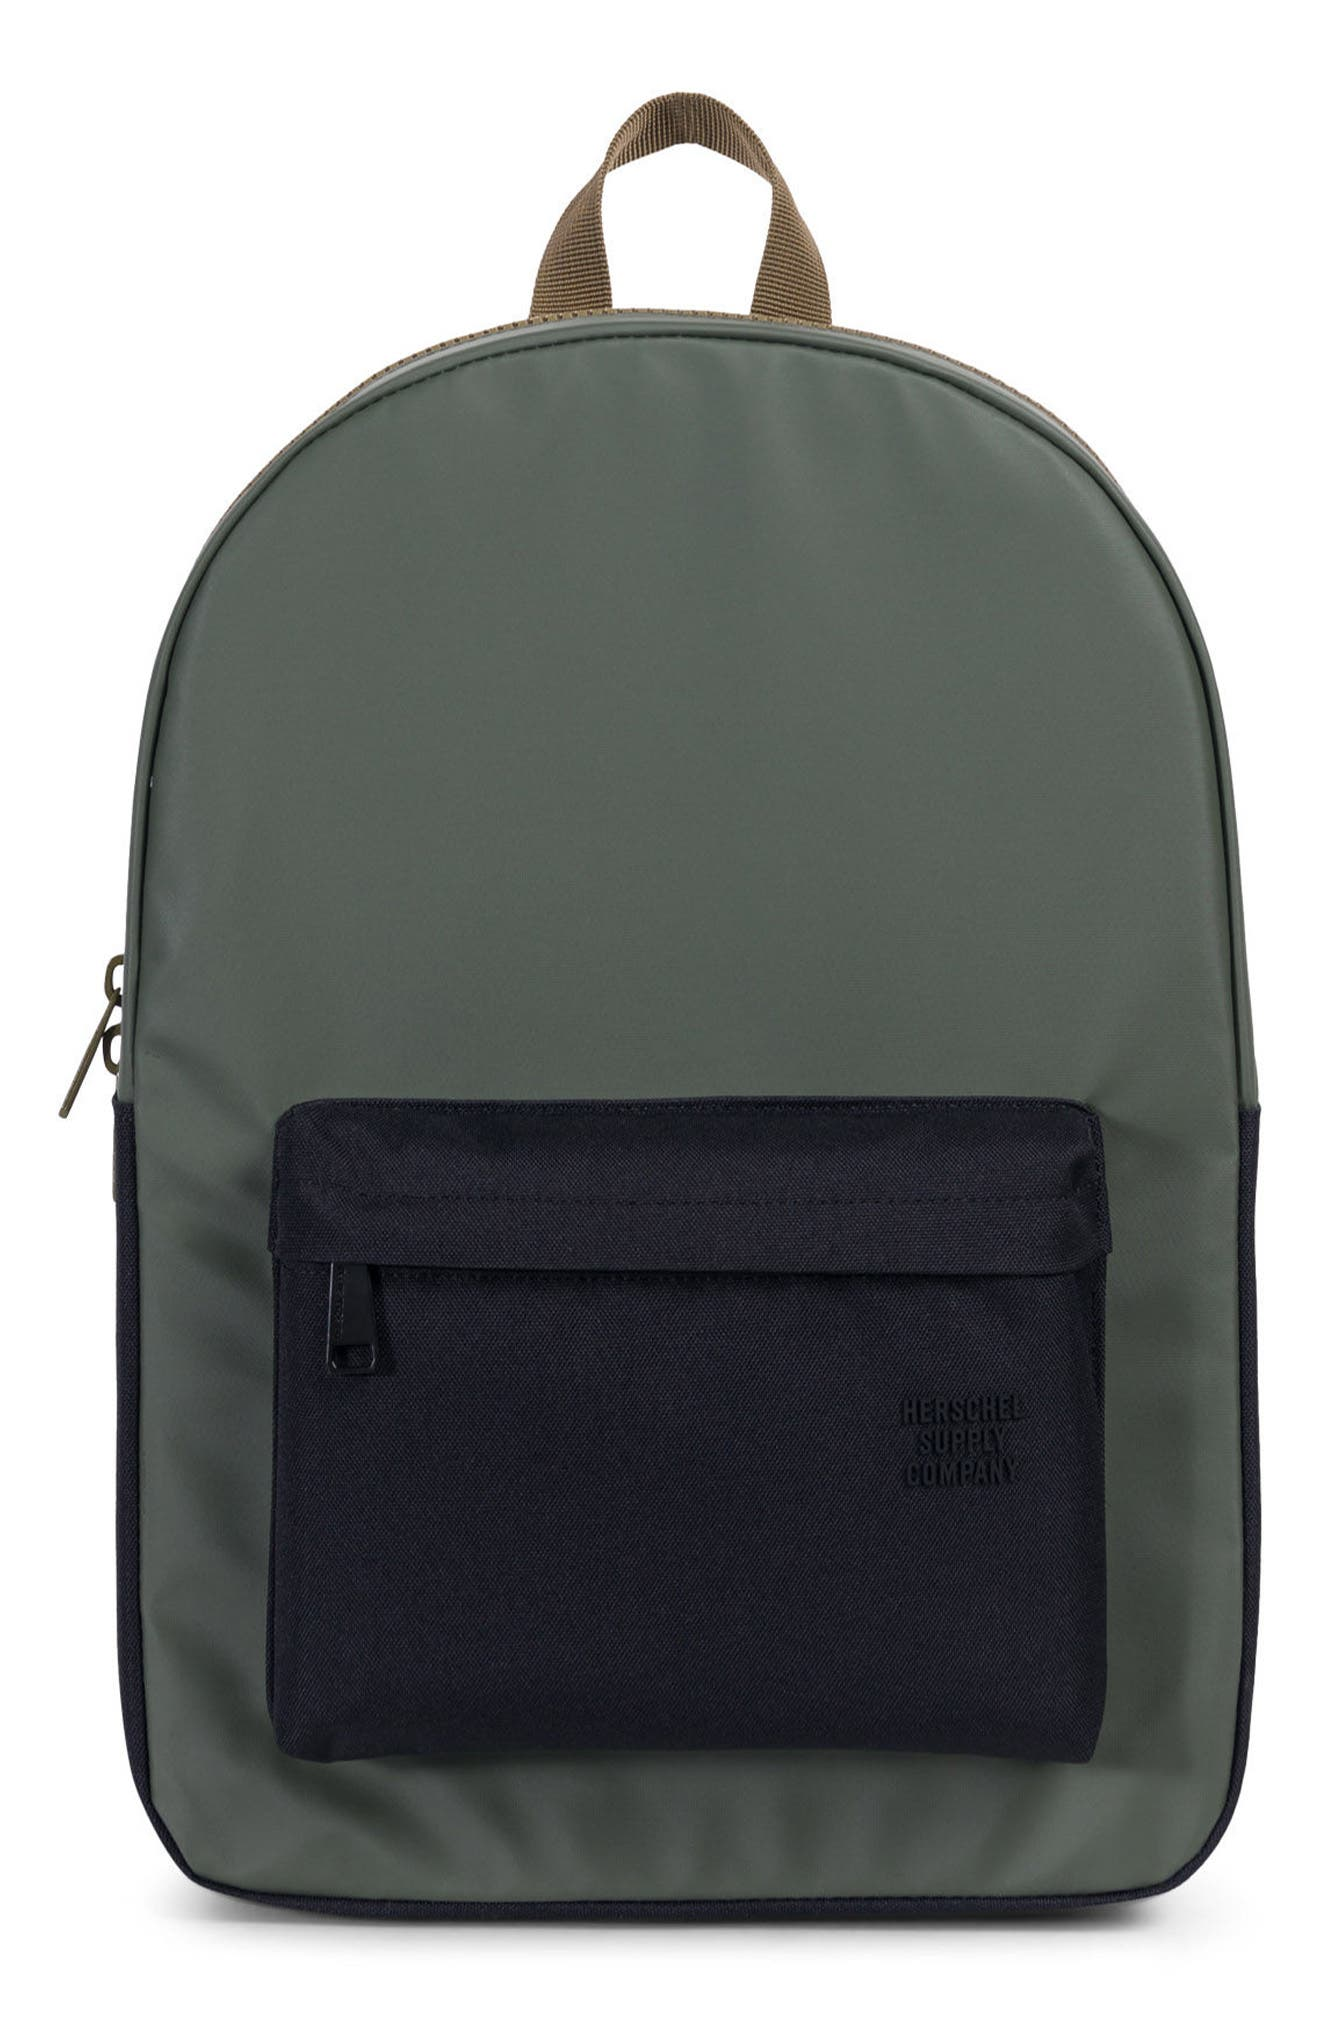 Winlaw Studio Backpack,                             Main thumbnail 1, color,                             300